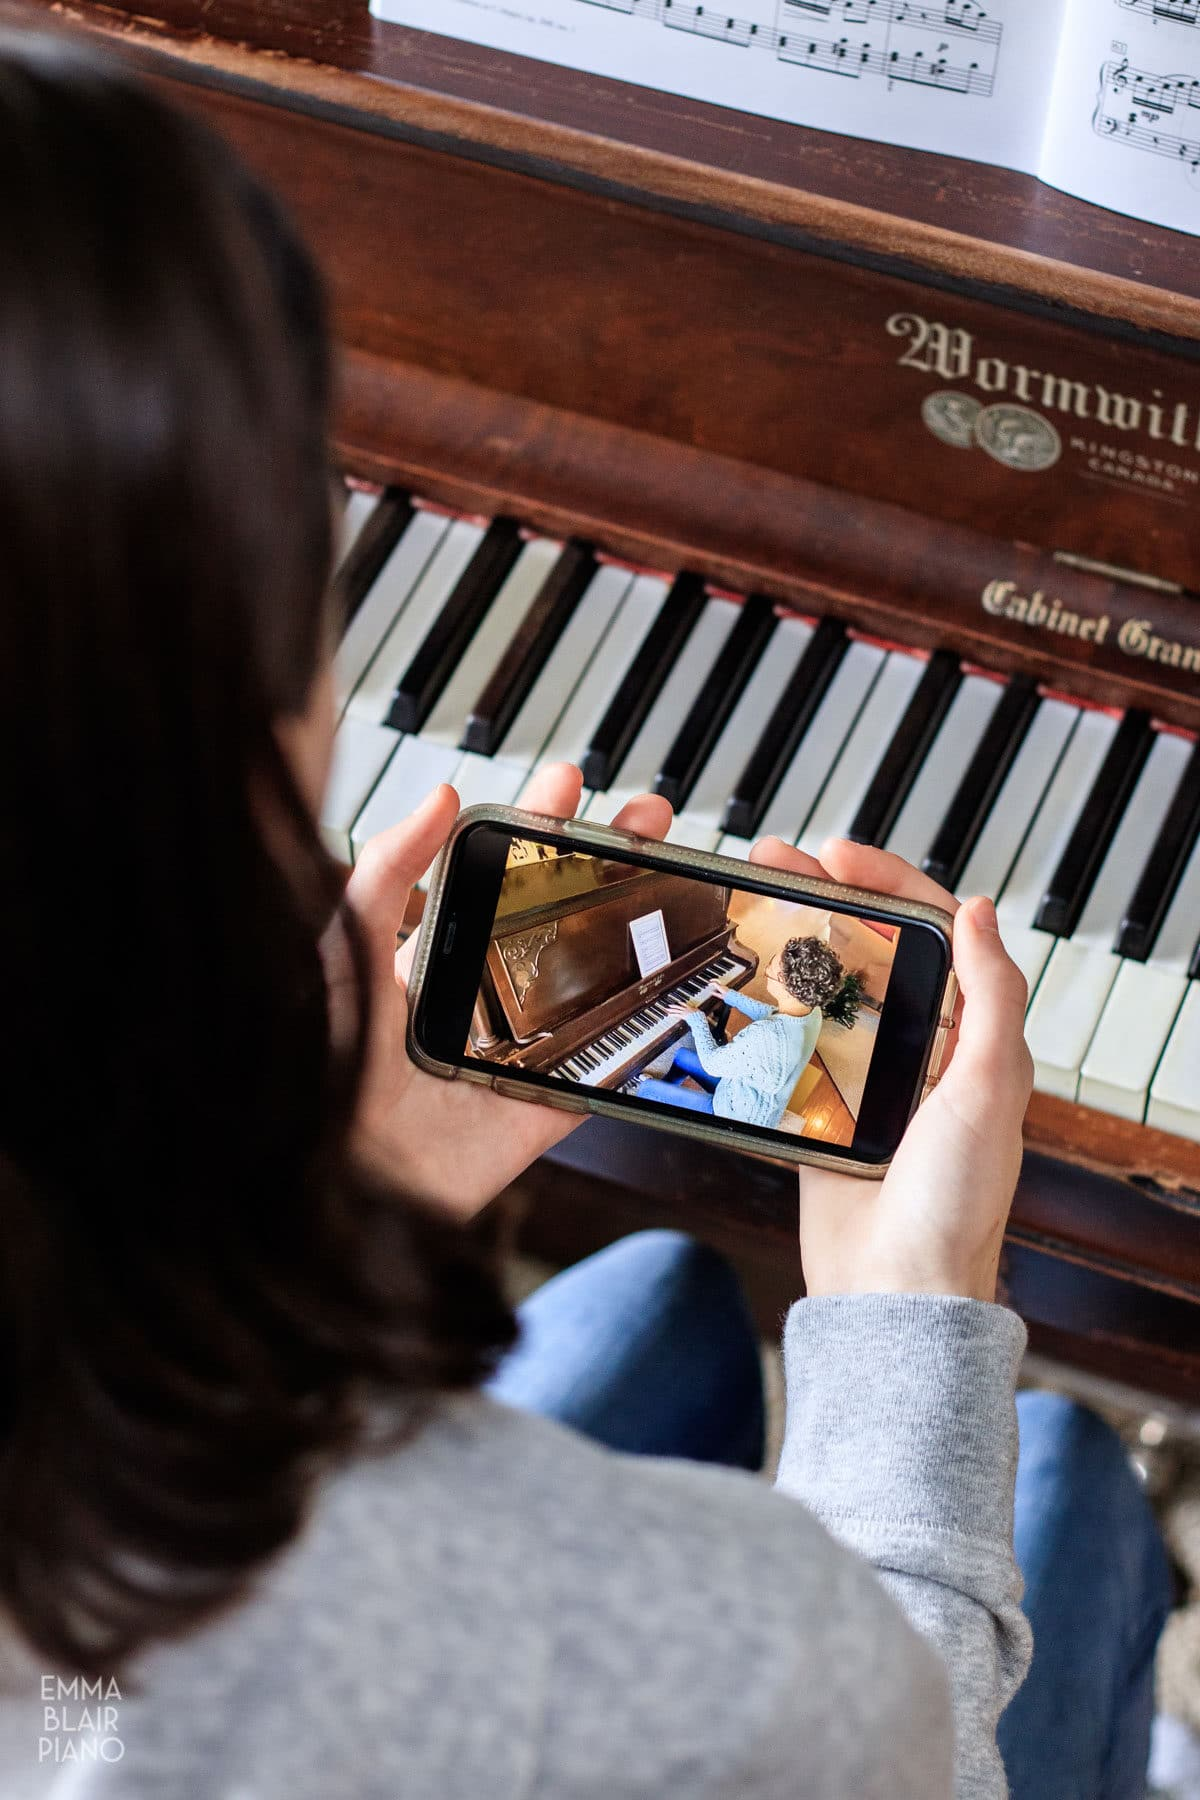 teenage girl watching a piano video on a cell phone